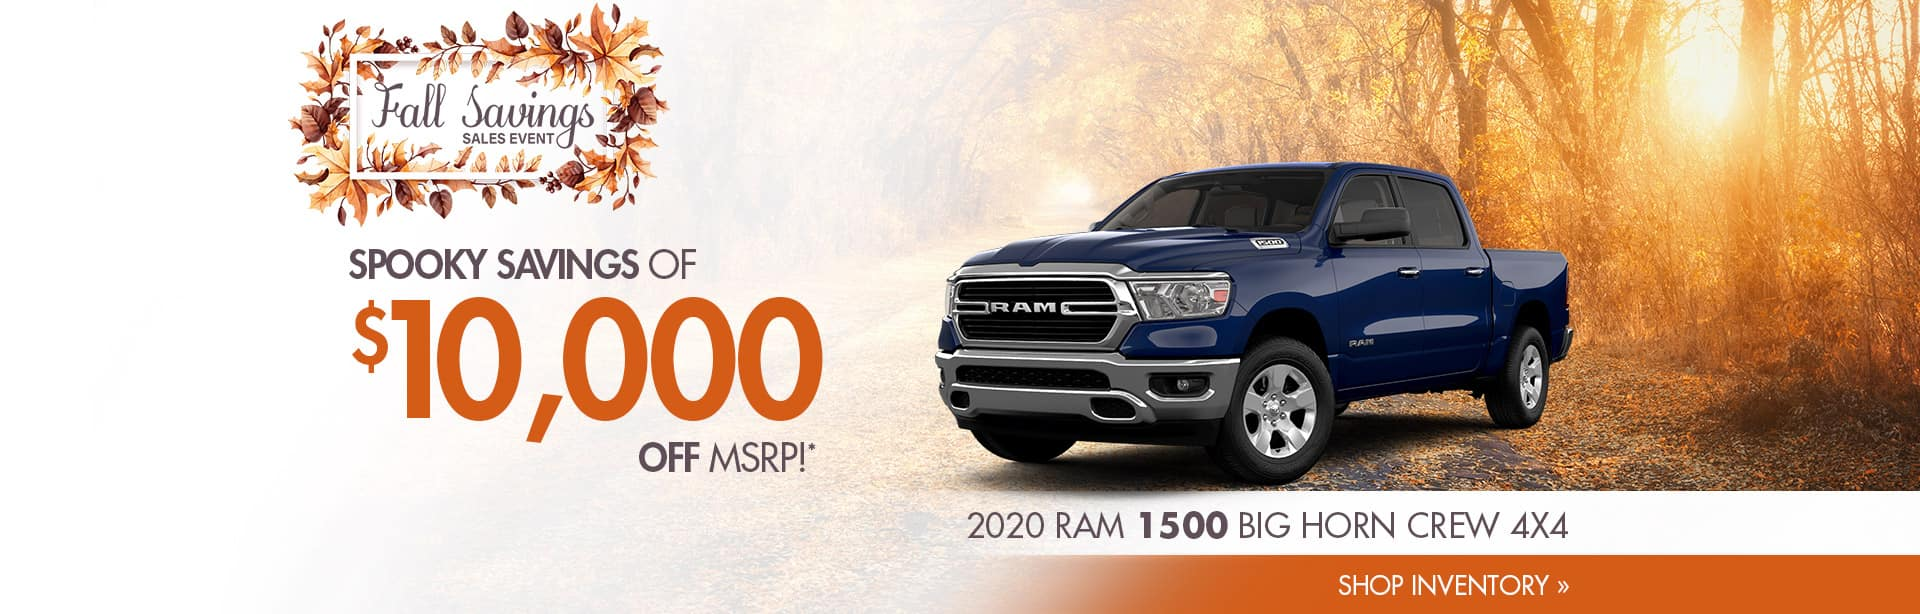 Up to $10,000 off a new Ram 1500 near Terre Haute, Indiana.